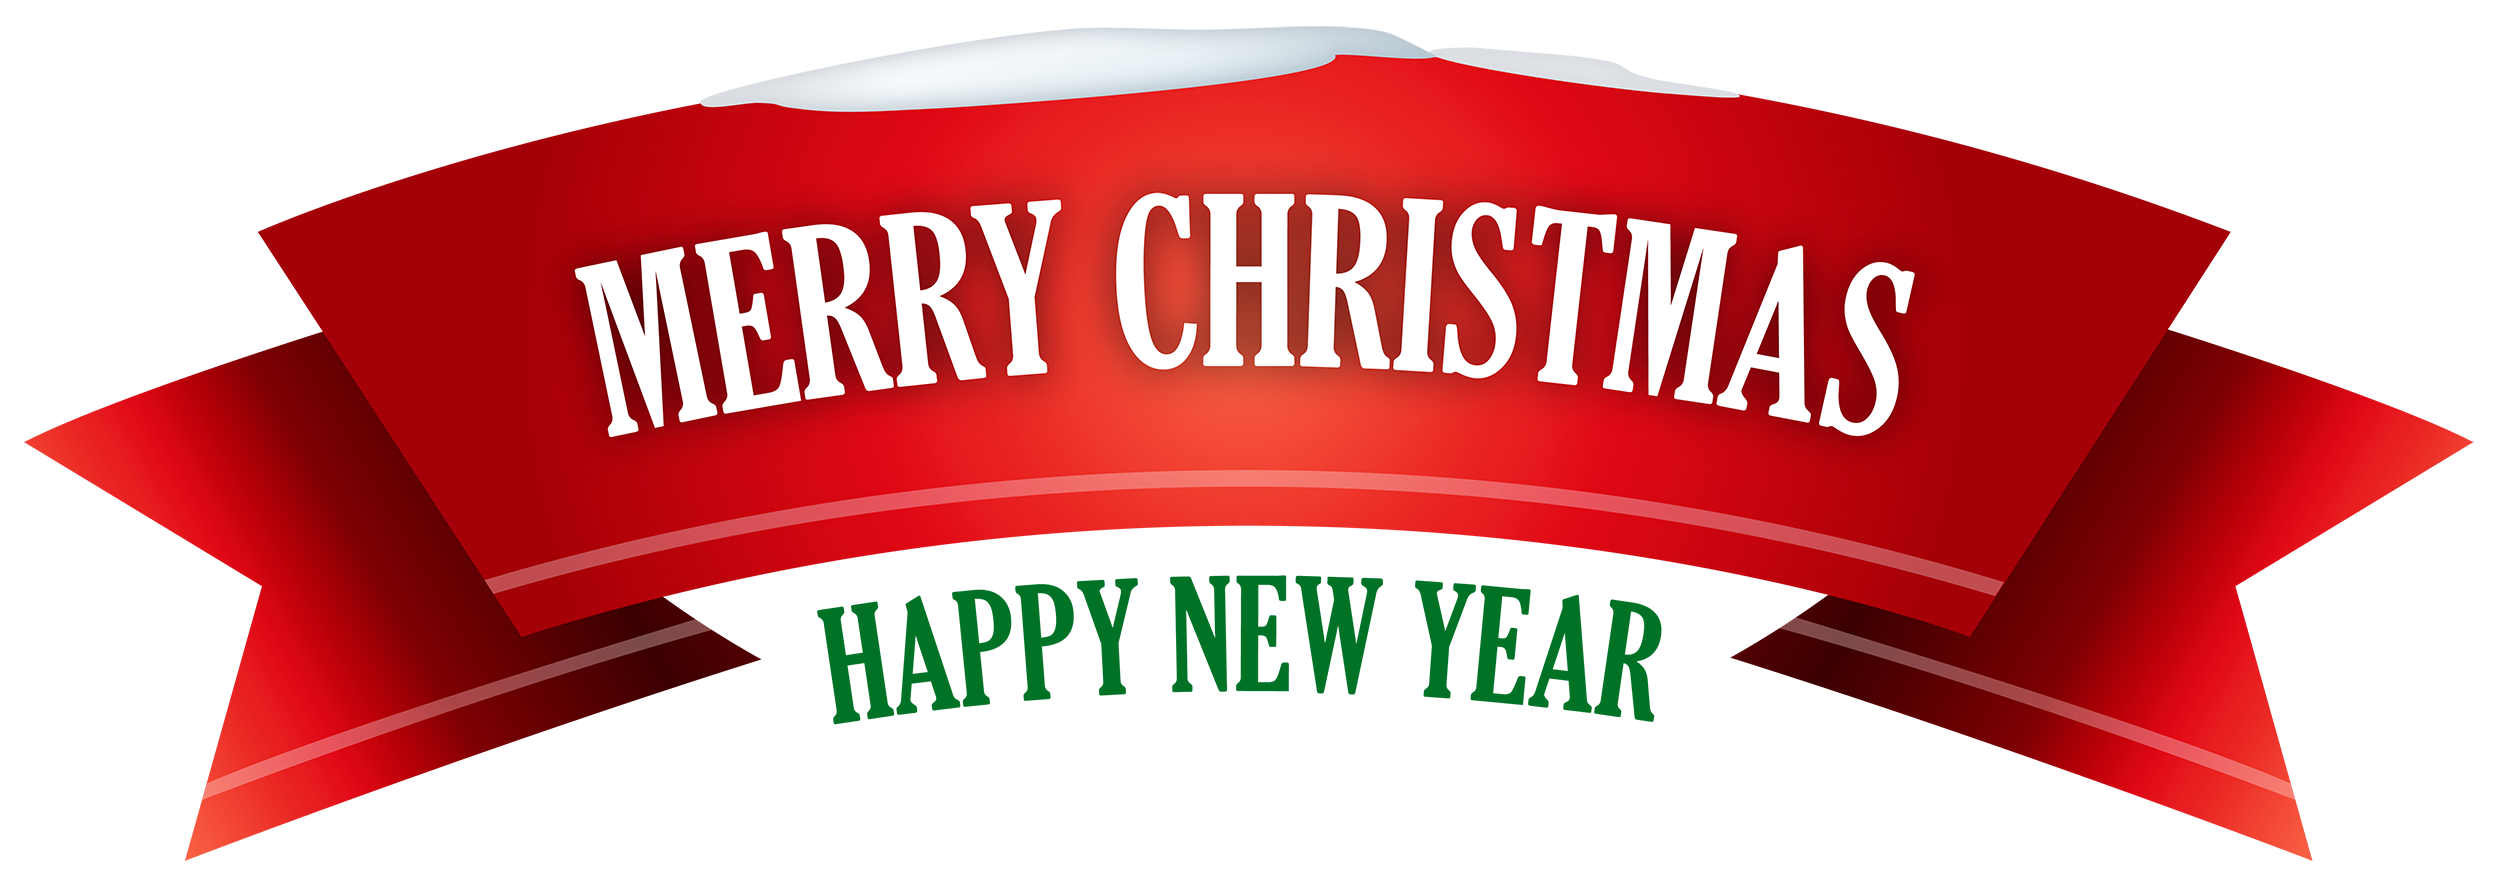 Merry christmas png. Red snowy banner clipart